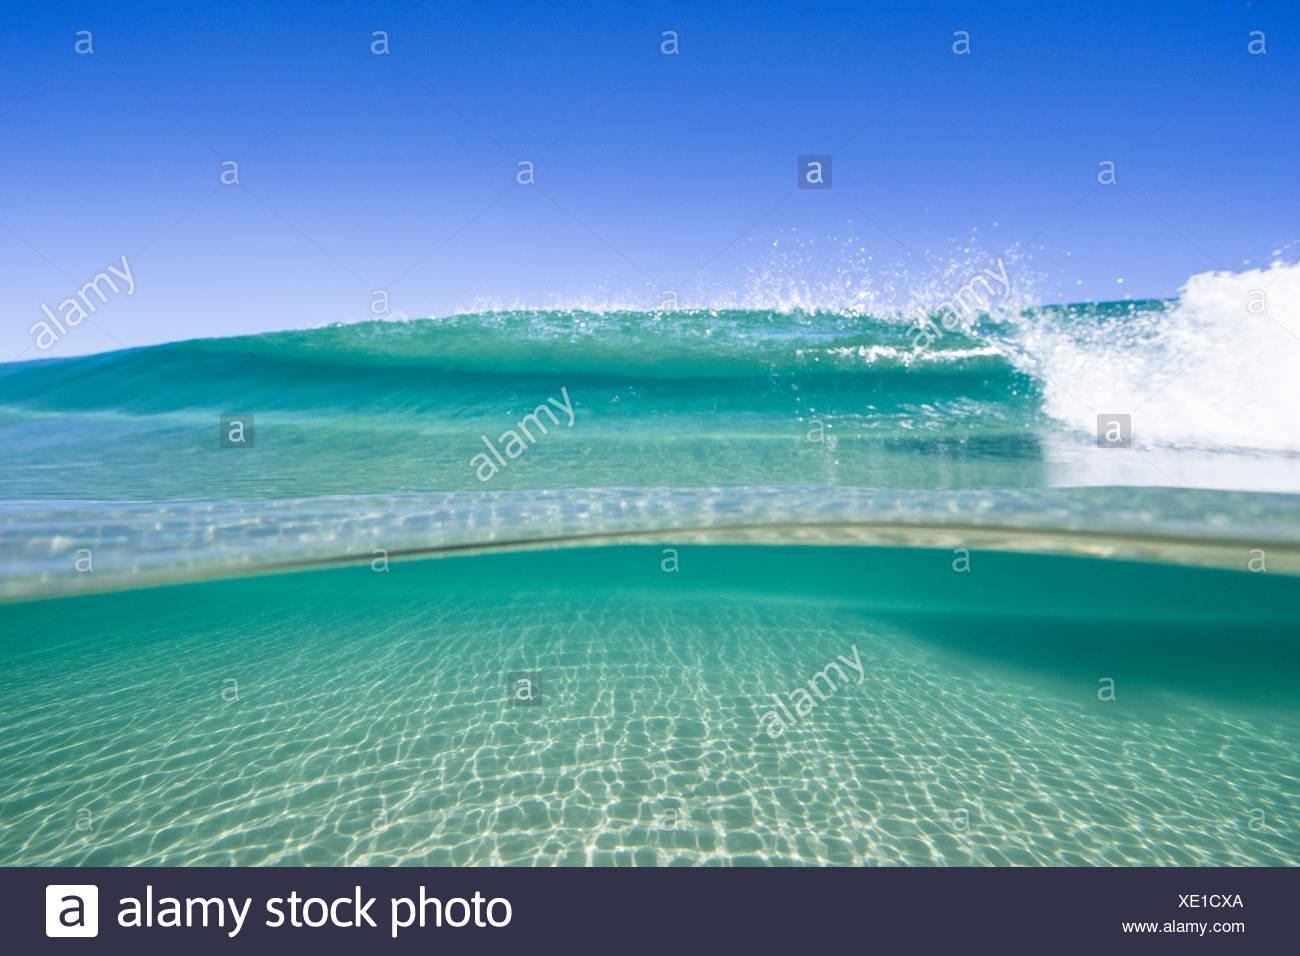 View of waves on sunny day - Stock Image